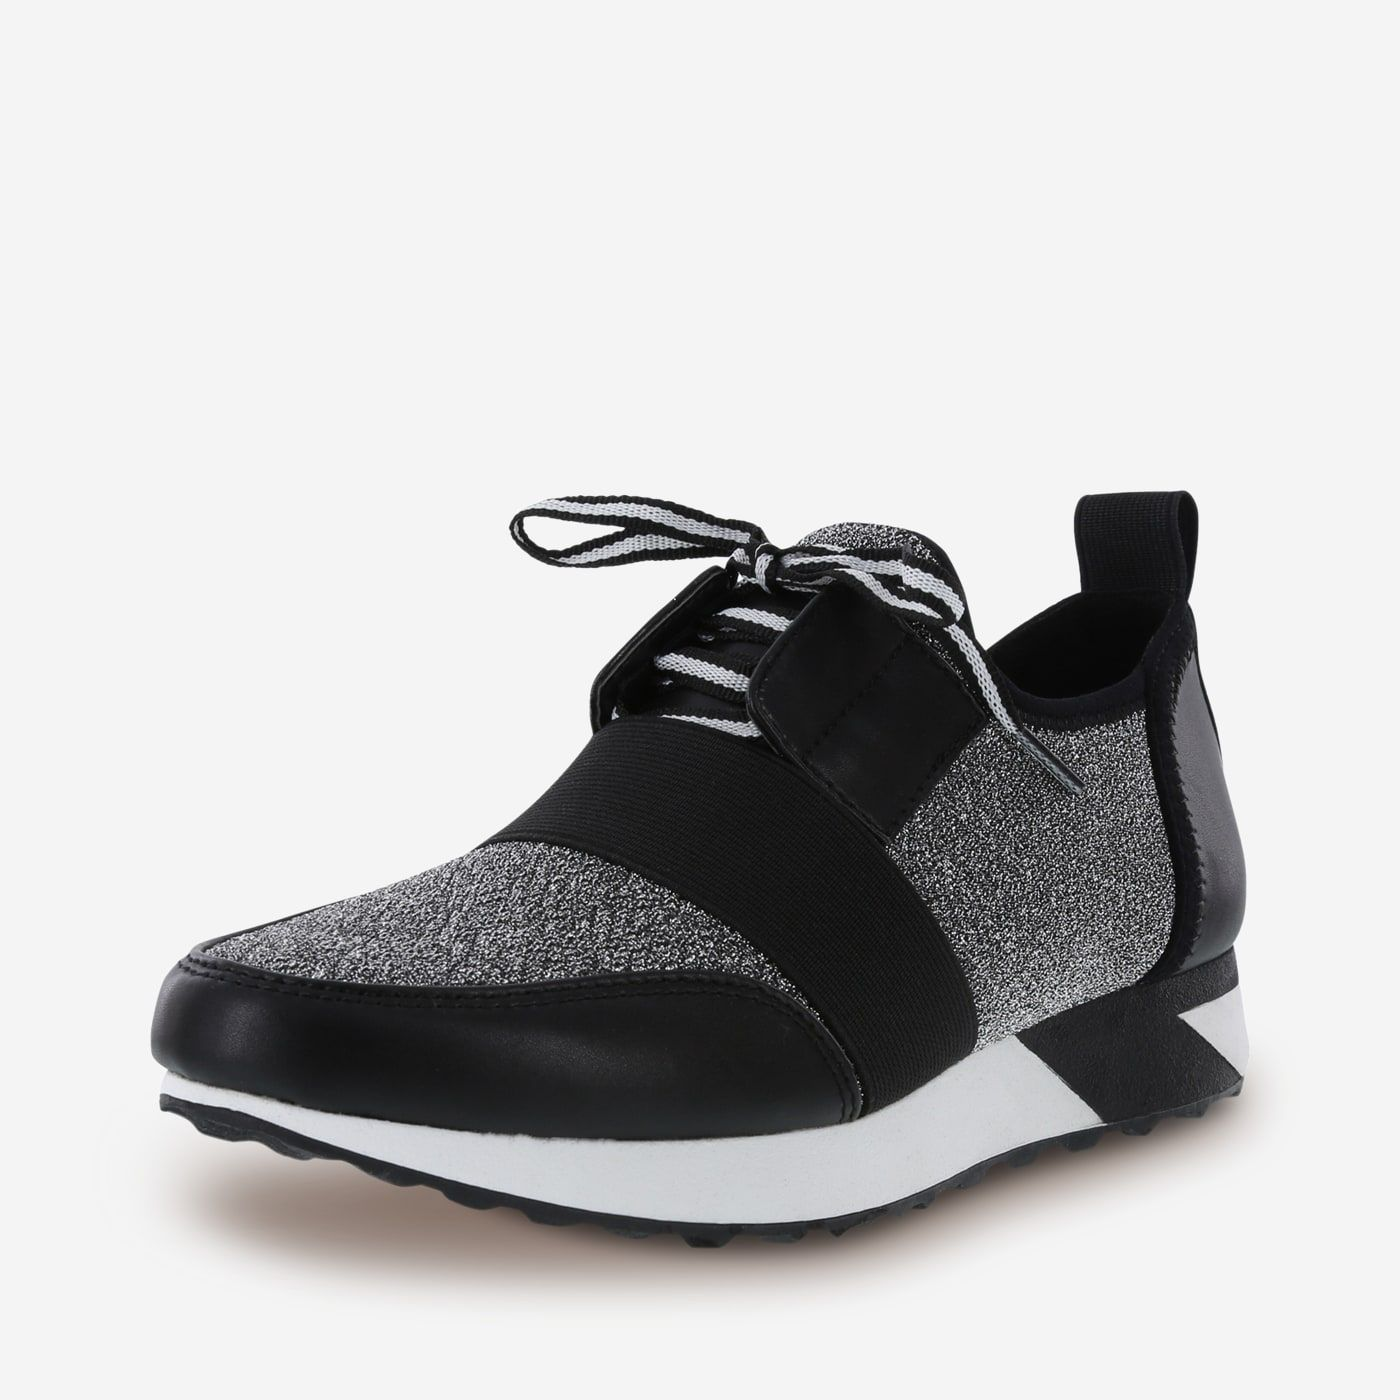 Multicolor Sneaker | Payless